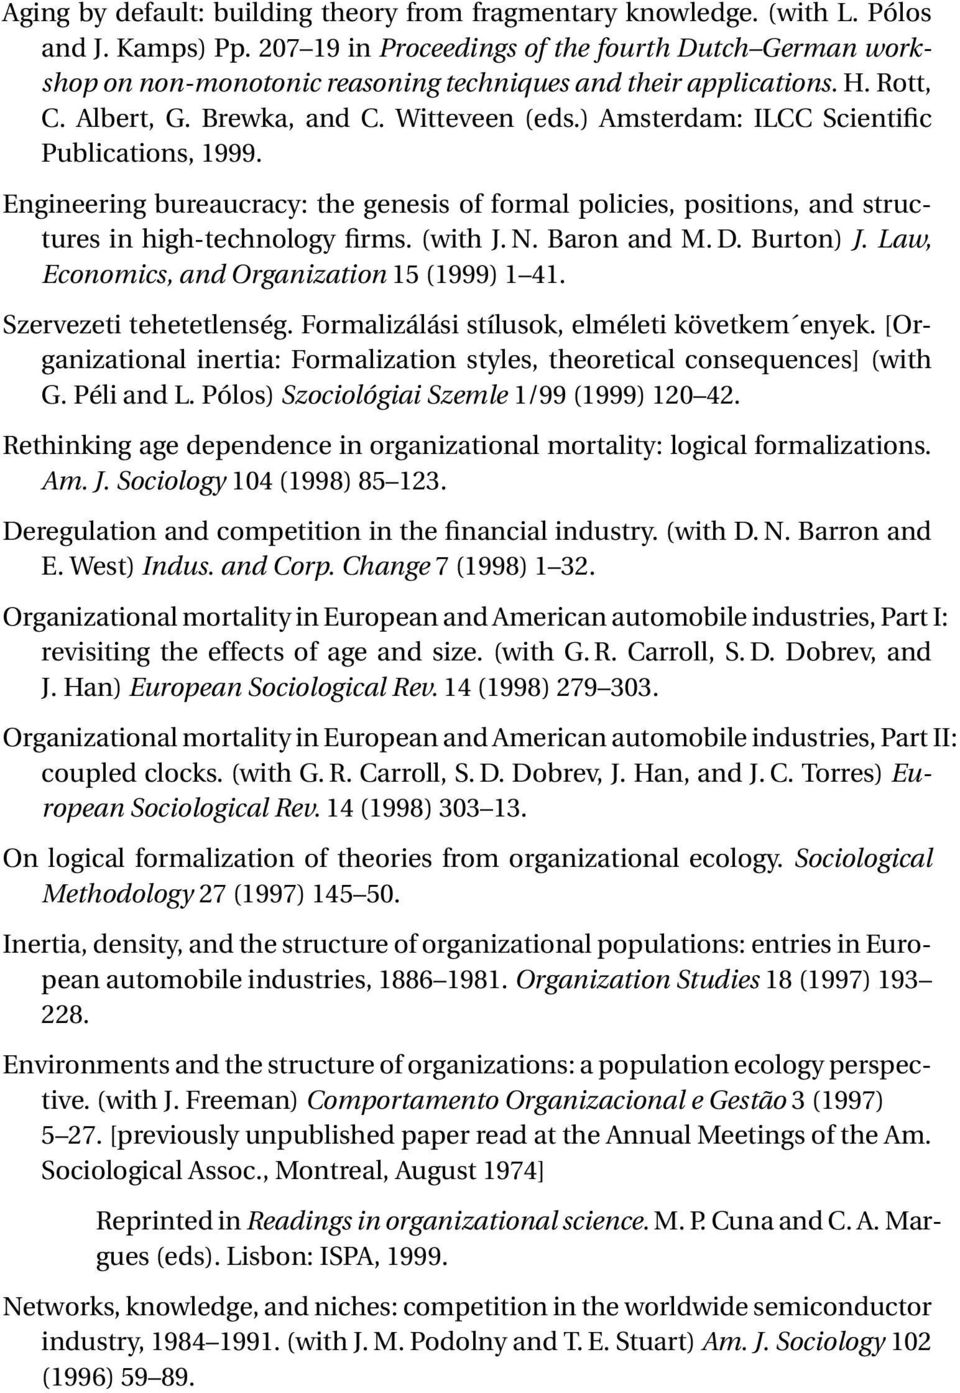 ) Amsterdam: ILCC Scientific Publications, 1999. Engineering bureaucracy: the genesis of formal policies, positions, and structures in high-technology firms. (with J. N. Baron and M. D. Burton) J.